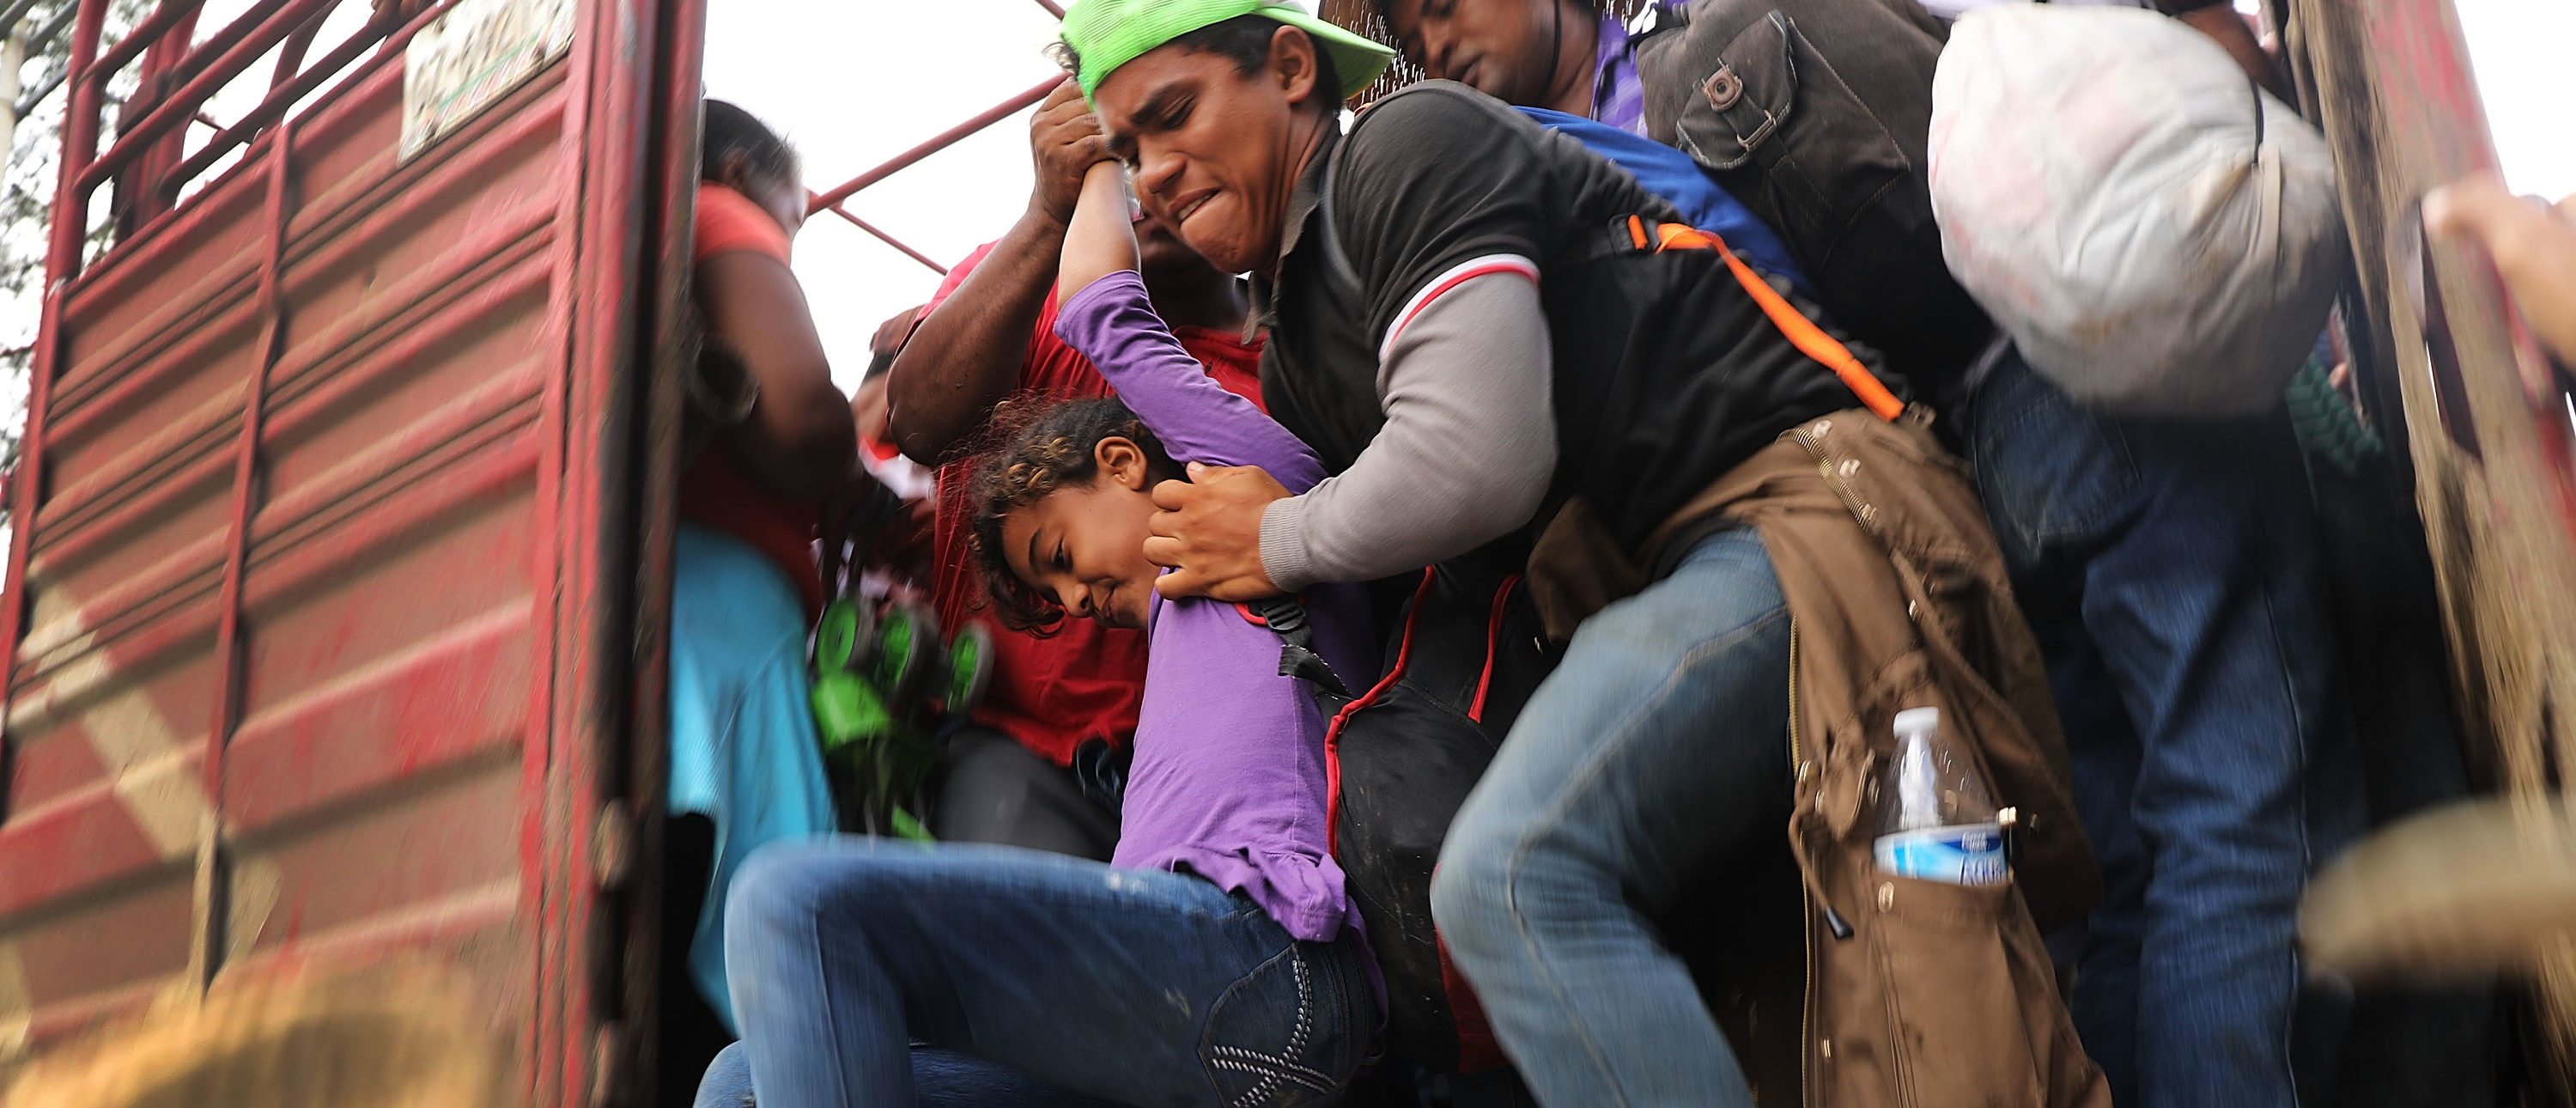 Members of the Central American migrant caravan attempt to get into the back of a truck as they move to the next town on November 02, 2018 in Donaji, Mexico. (Photo by Spencer Platt/Getty Images)